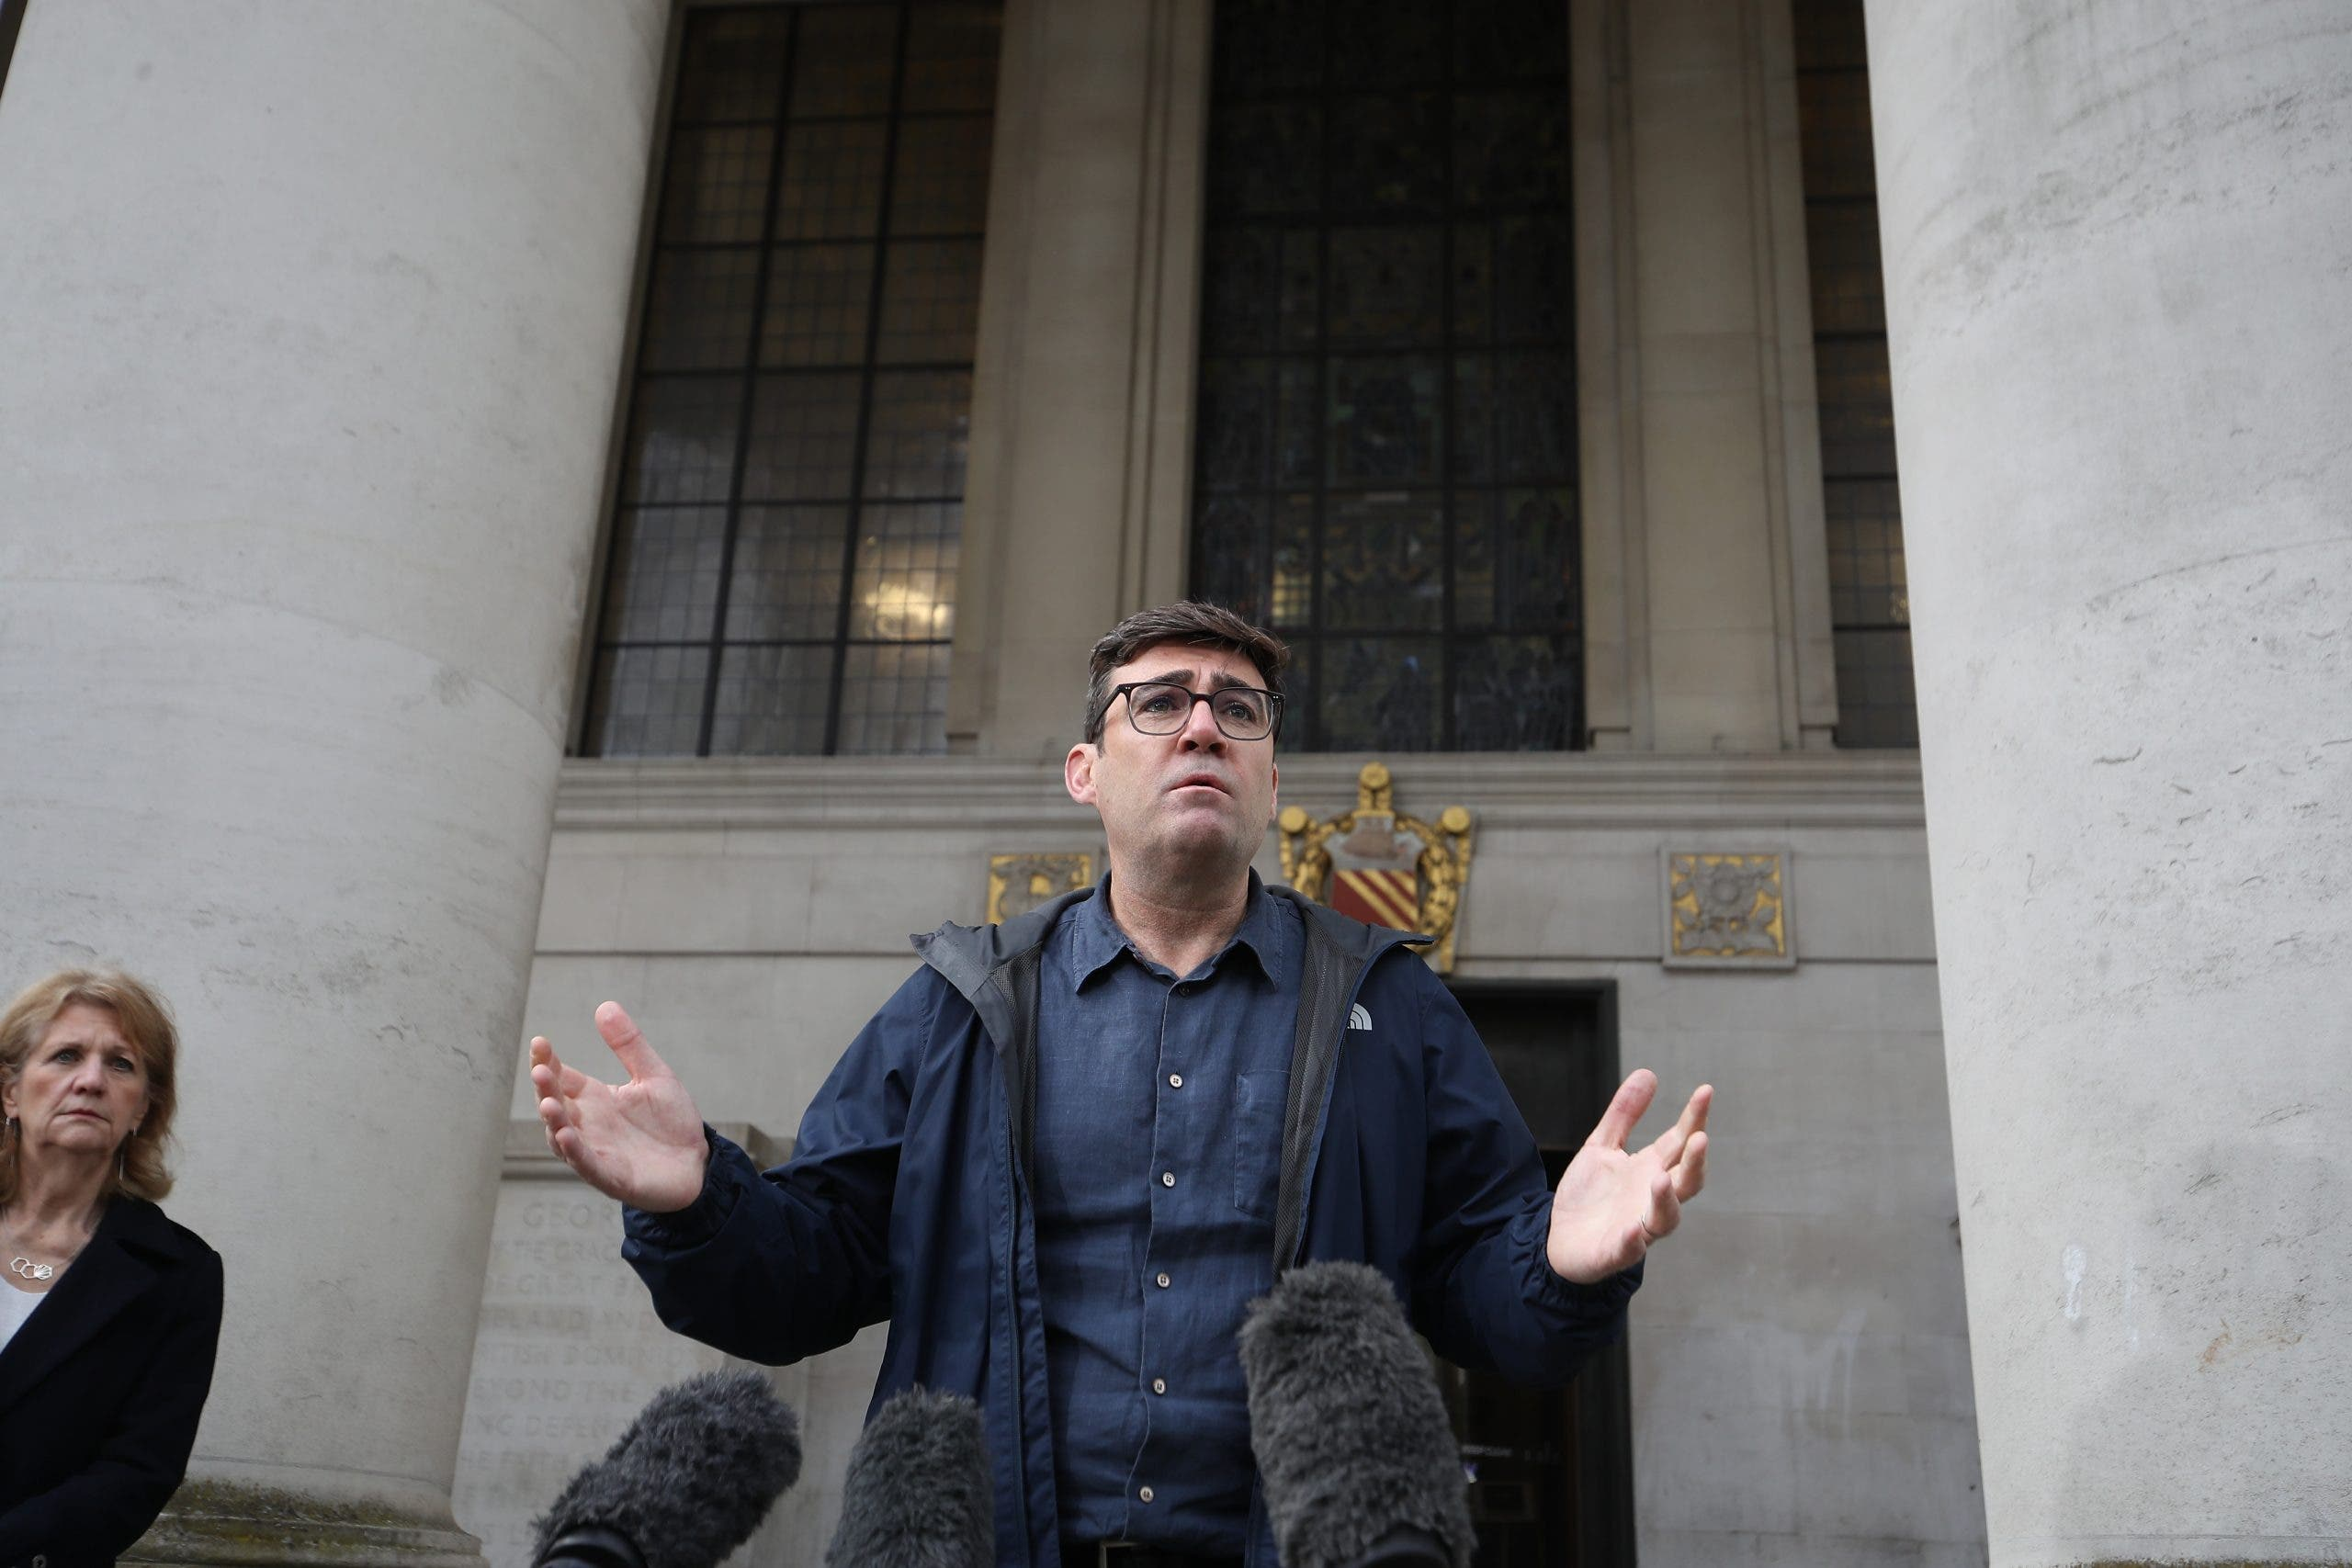 Burnham blames Sunak in Manchester lockdown row as he calls for Labour party support